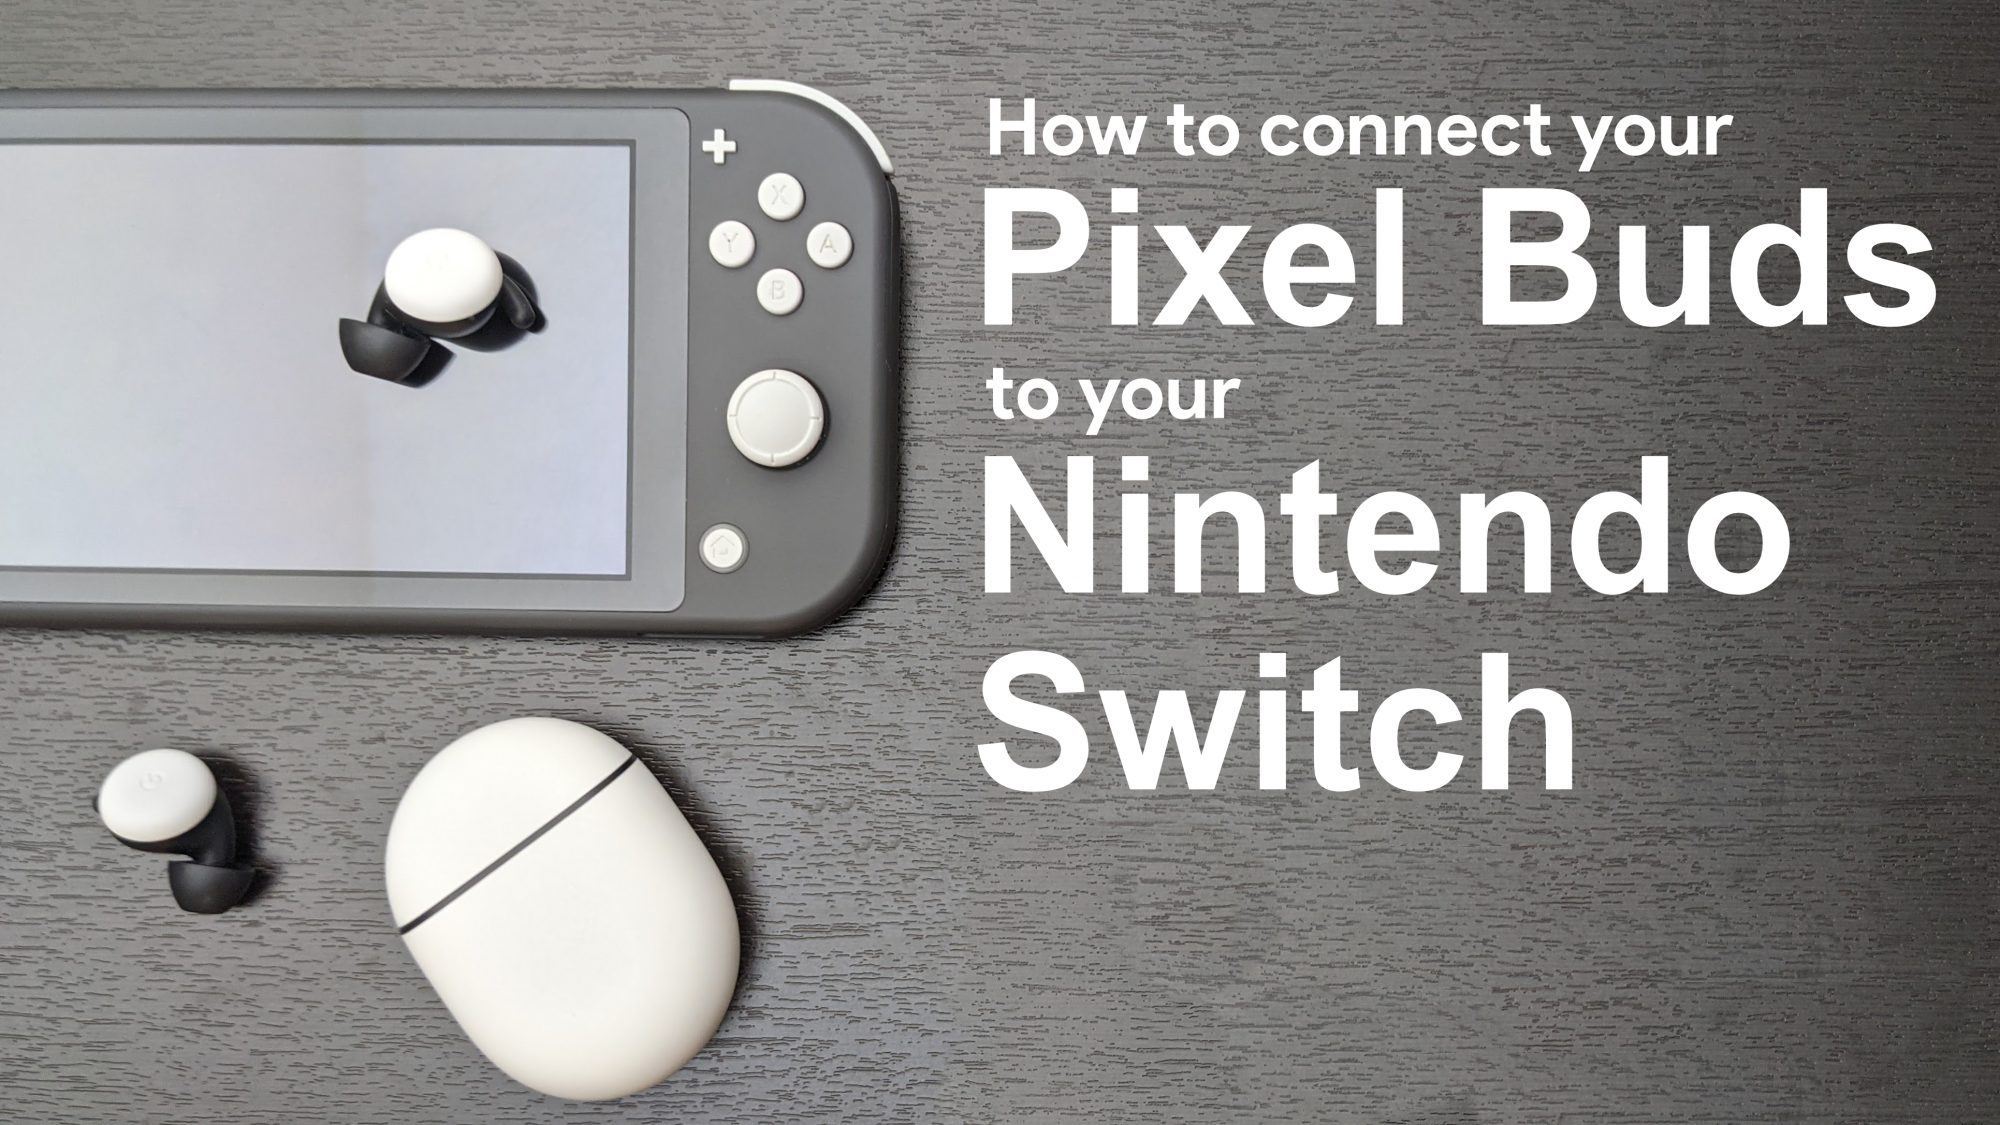 Google's Pixel Buds can now be paired with your Nintendo Switch, but the latency is real